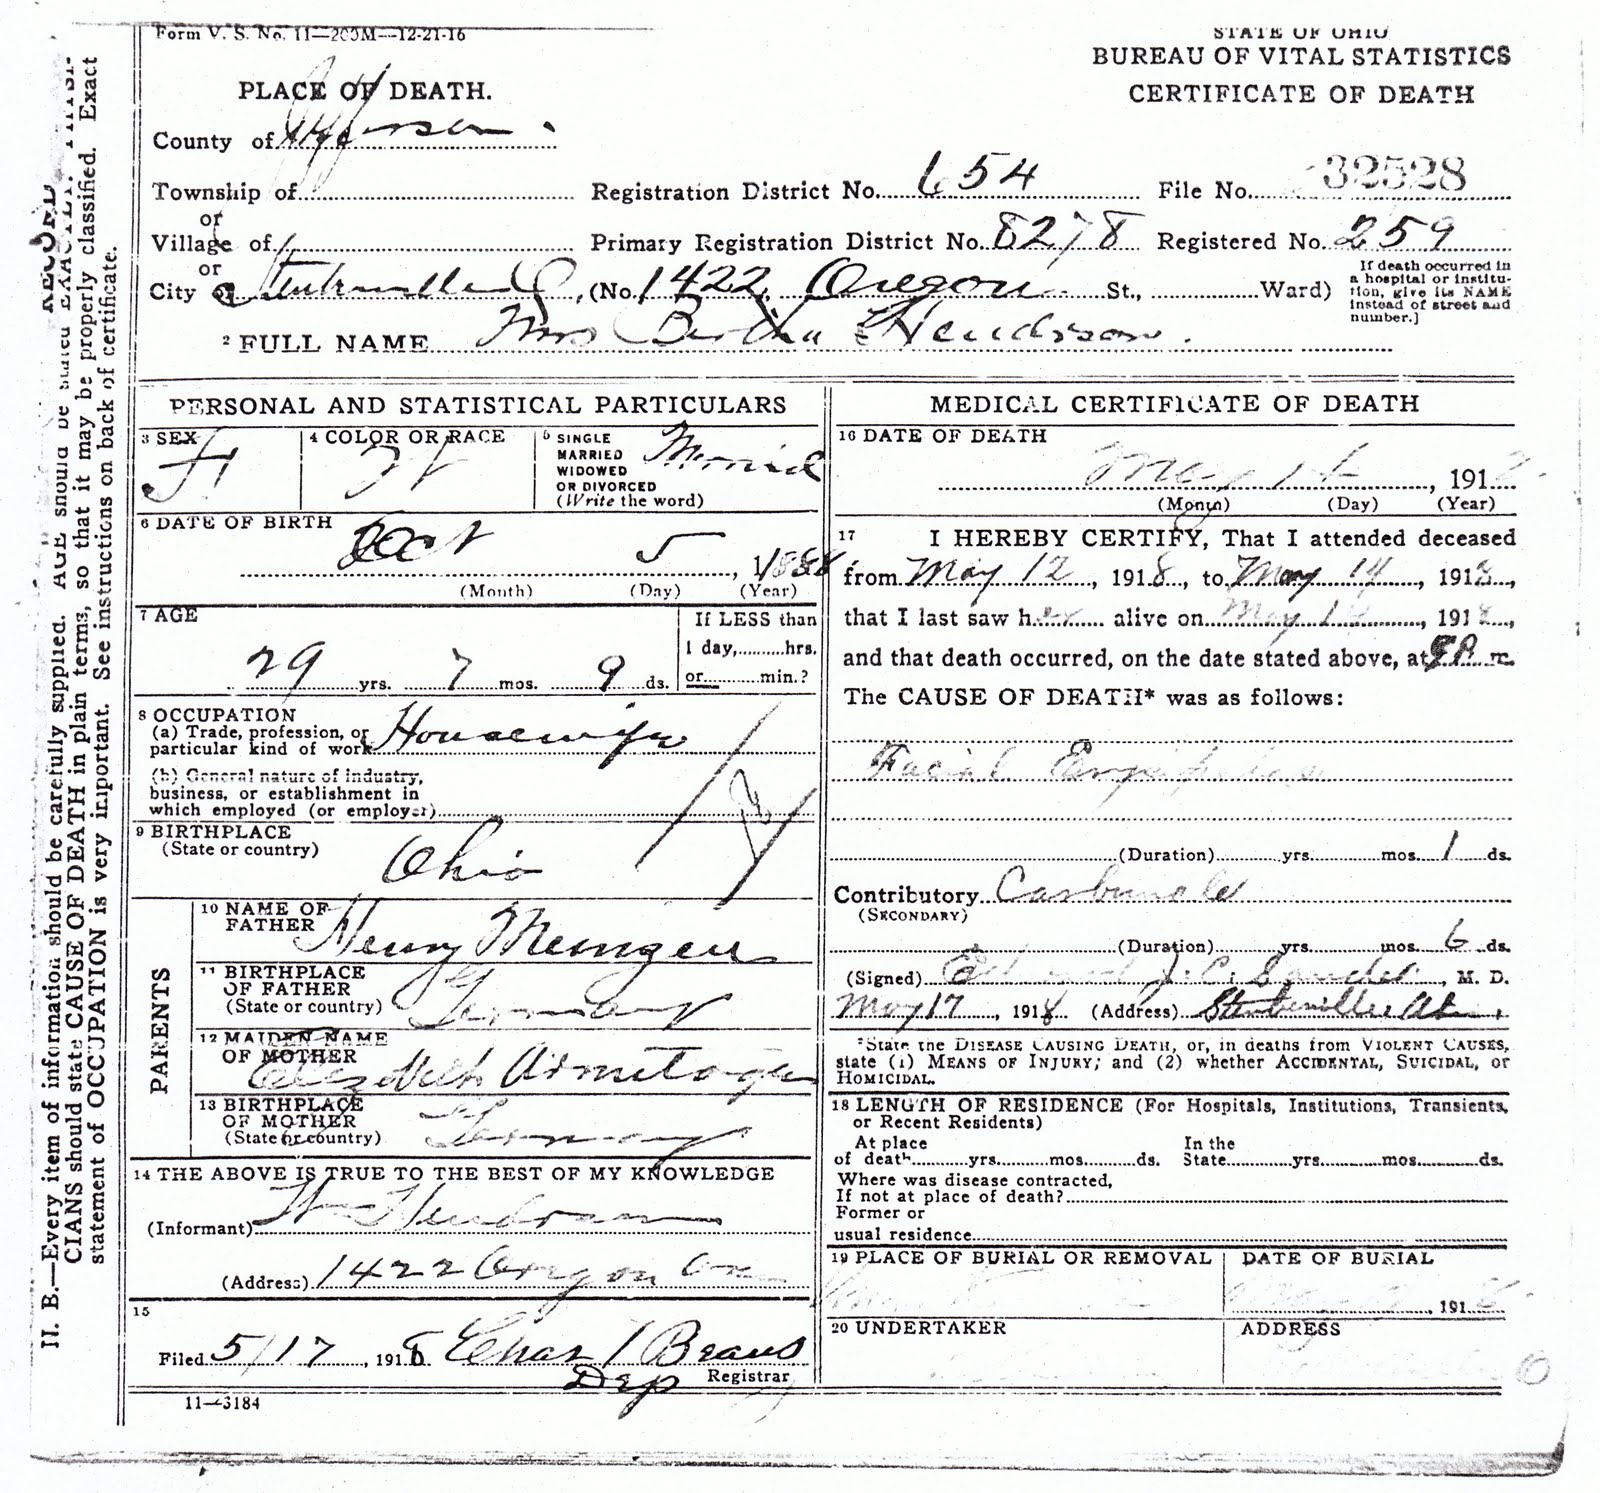 My ancestors and me bertha meinzen henderson death certificate state of ohio bureau of vital statistics certificate of death place of death county of jefferson file no 32528 city of steubenville no xflitez Images